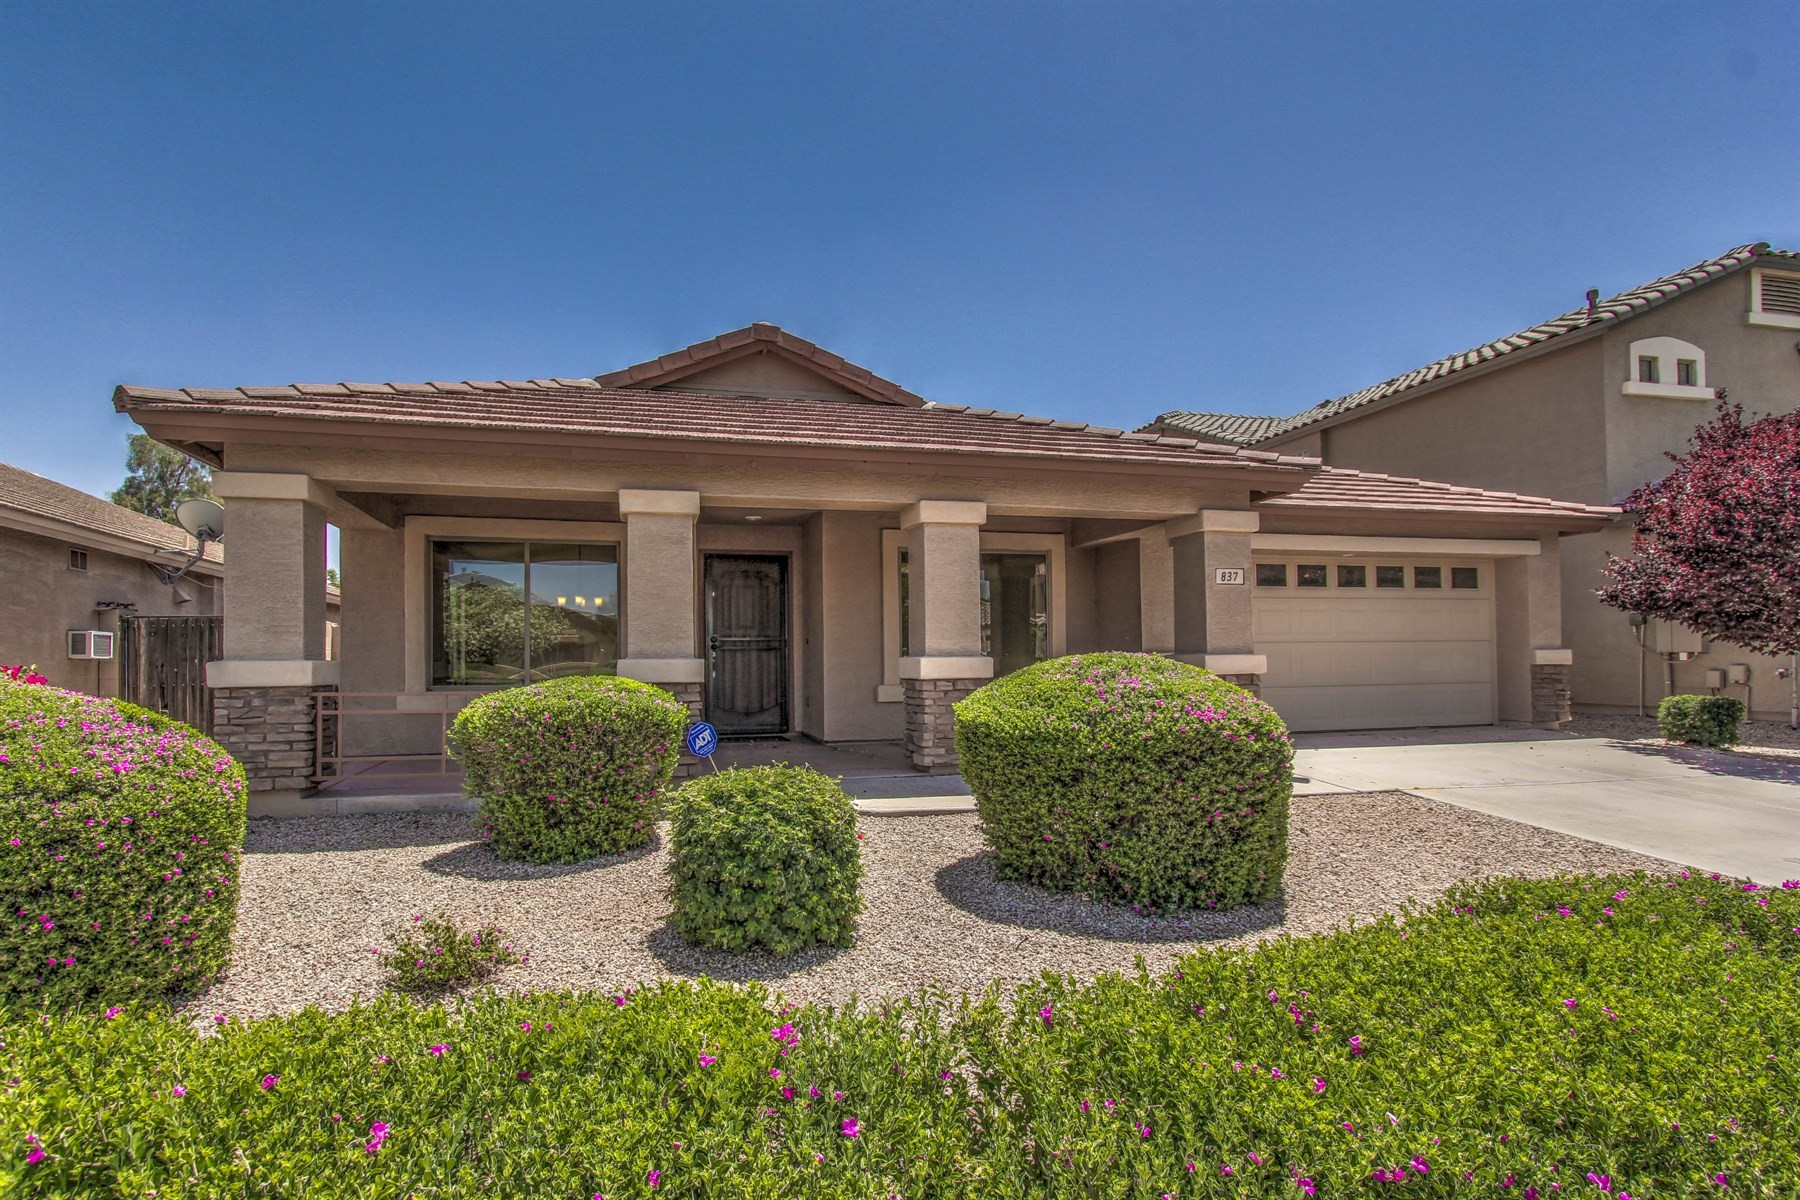 一戸建て のために 売買 アット Spectacular home in the Johnson Ranch community 837 E Dry Creek Rd San Tan Valley, アリゾナ, 85143 アメリカ合衆国